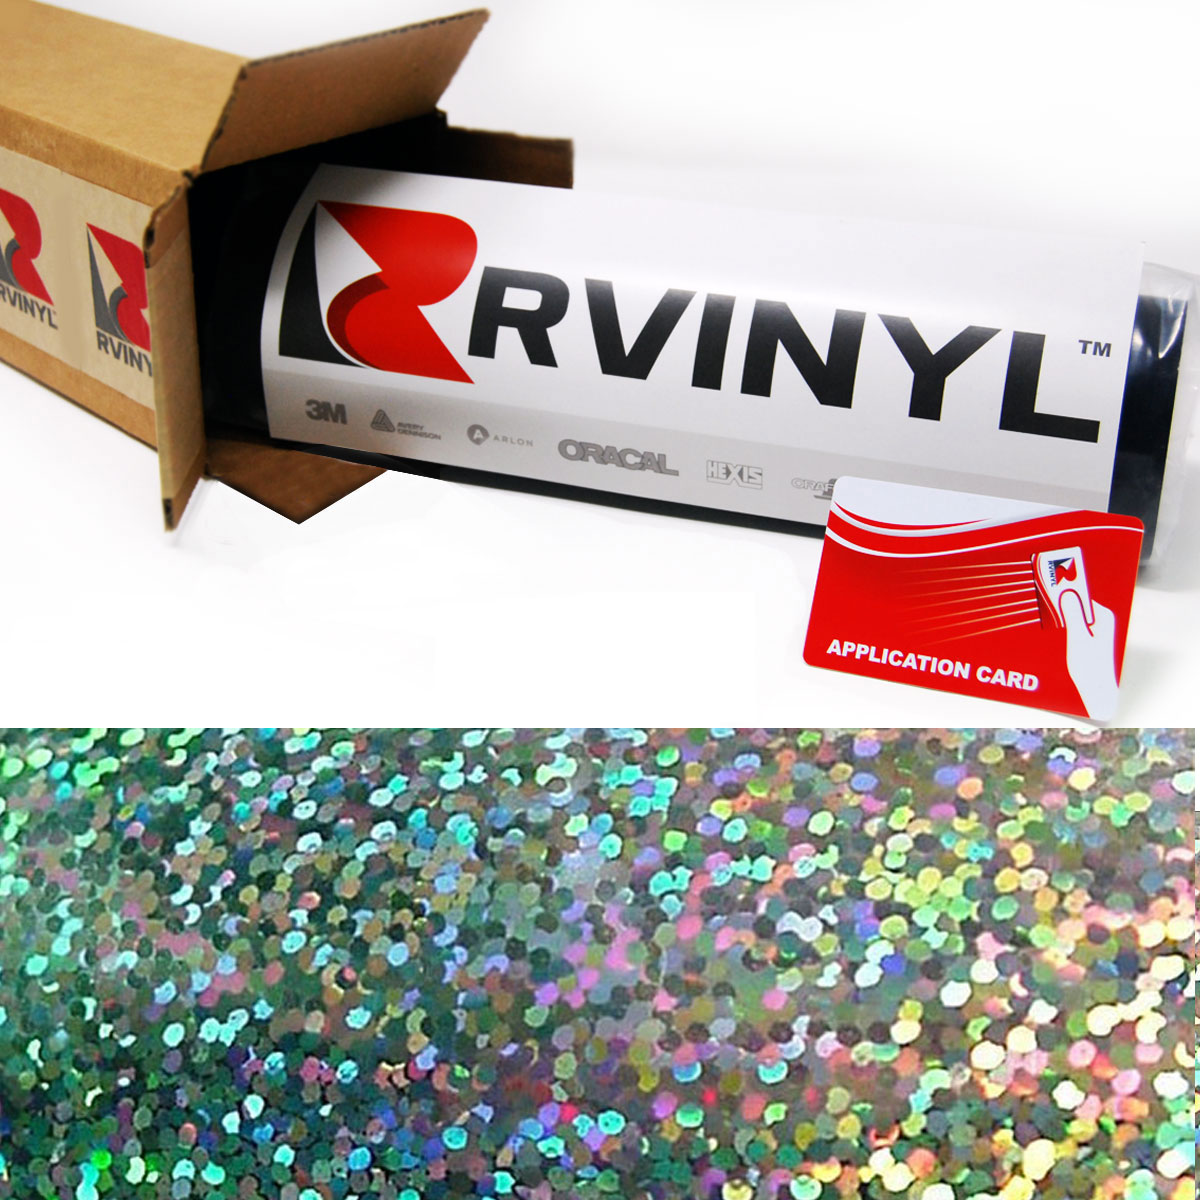 Avery SF100 Confetti Metalized Cut Vinyl Film